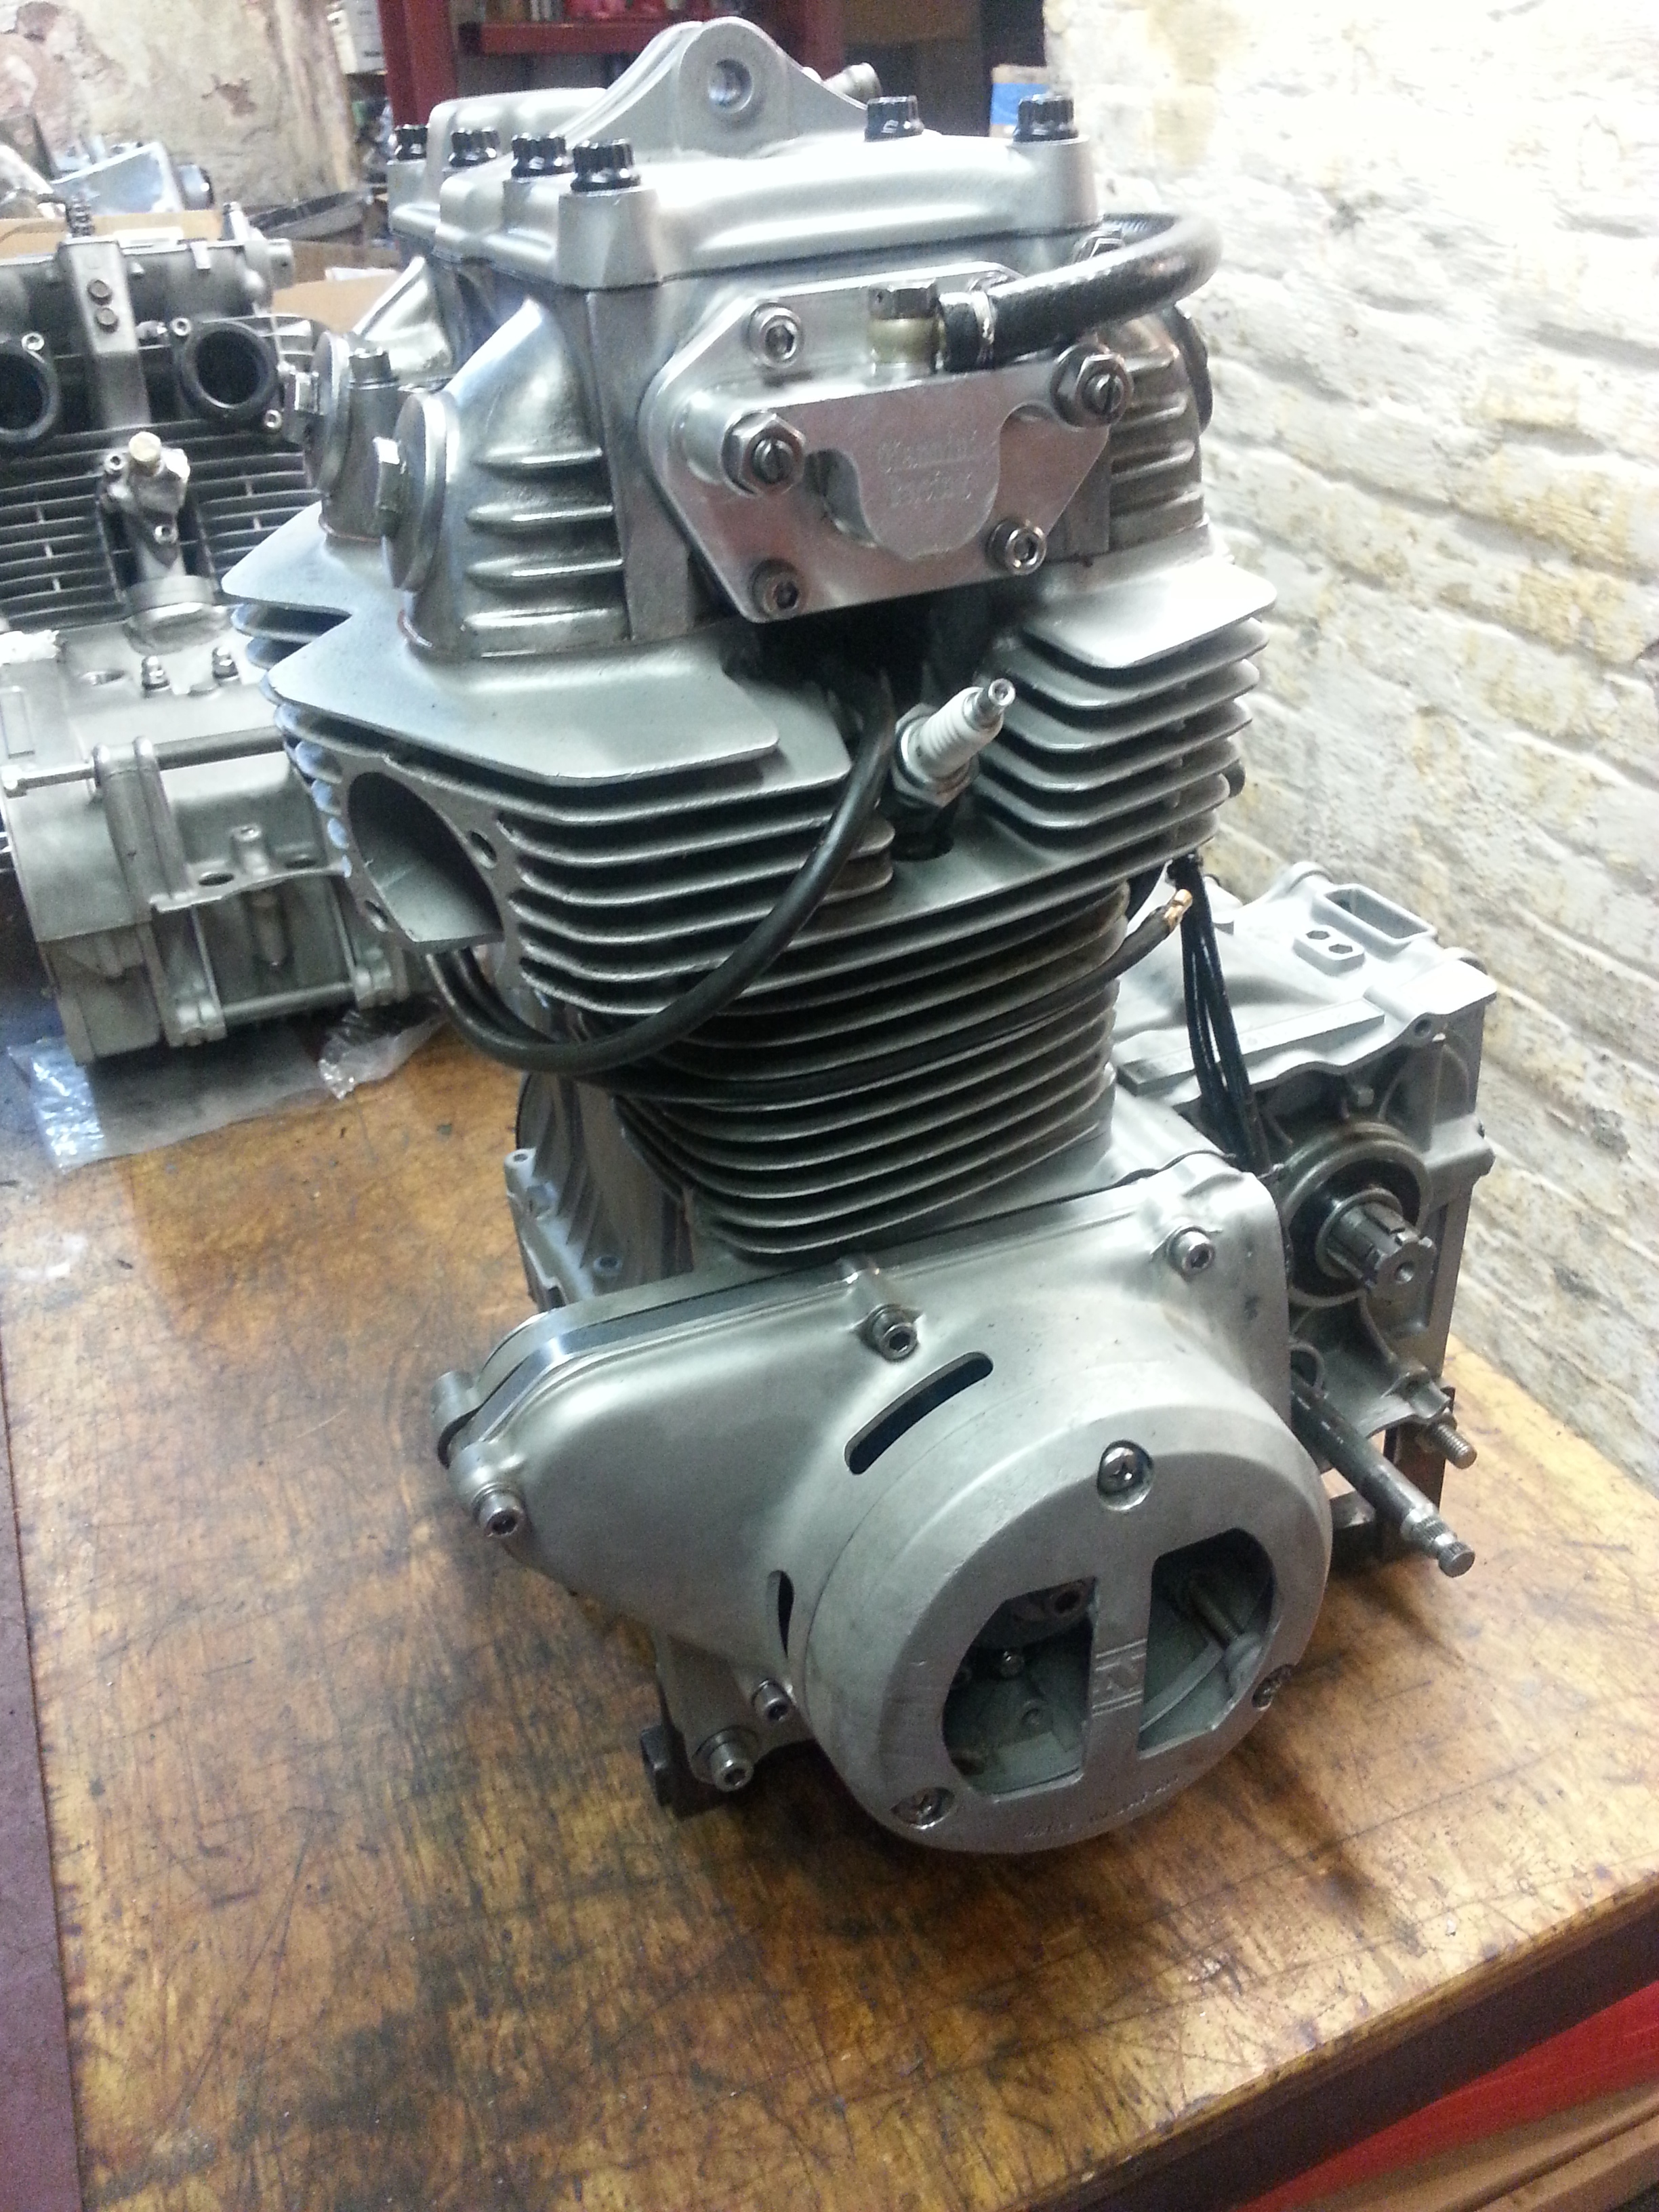 CB350 Engine ready to rev